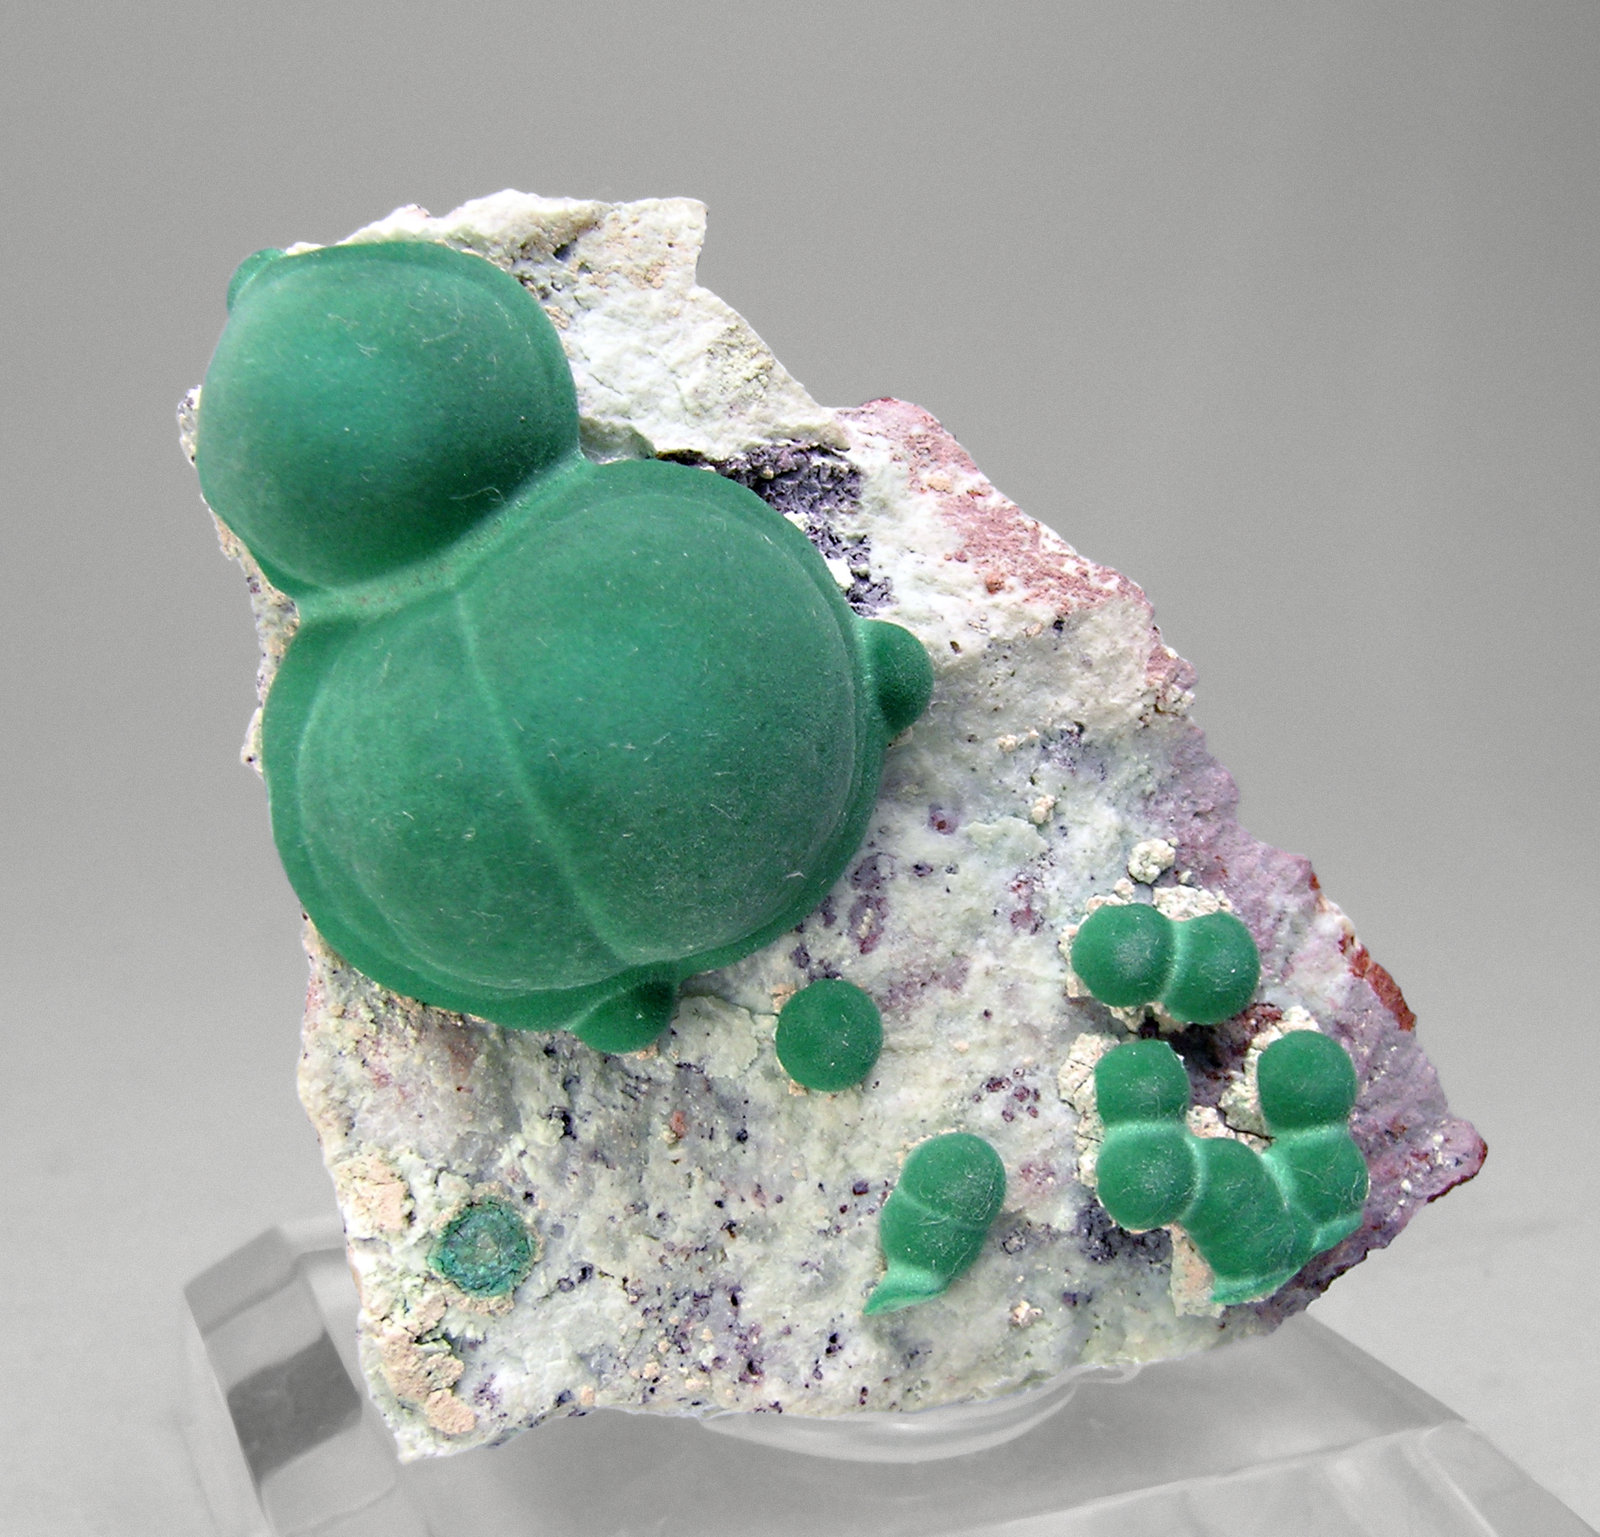 specimens/s_imagesM8/Malachite-AC27M8f.jpg